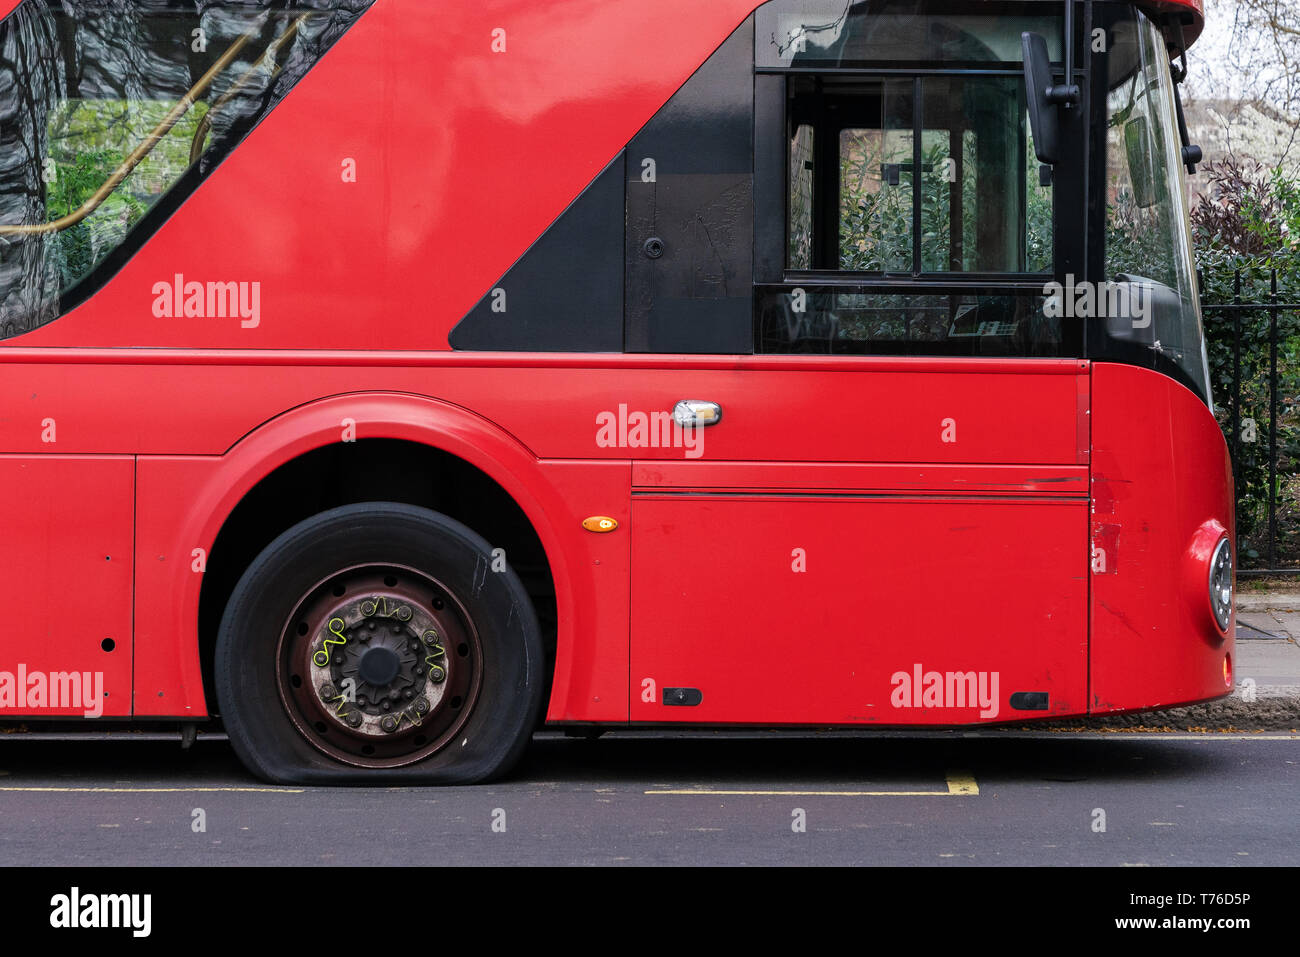 Flat tire on a red double decker bus in London. - Stock Image